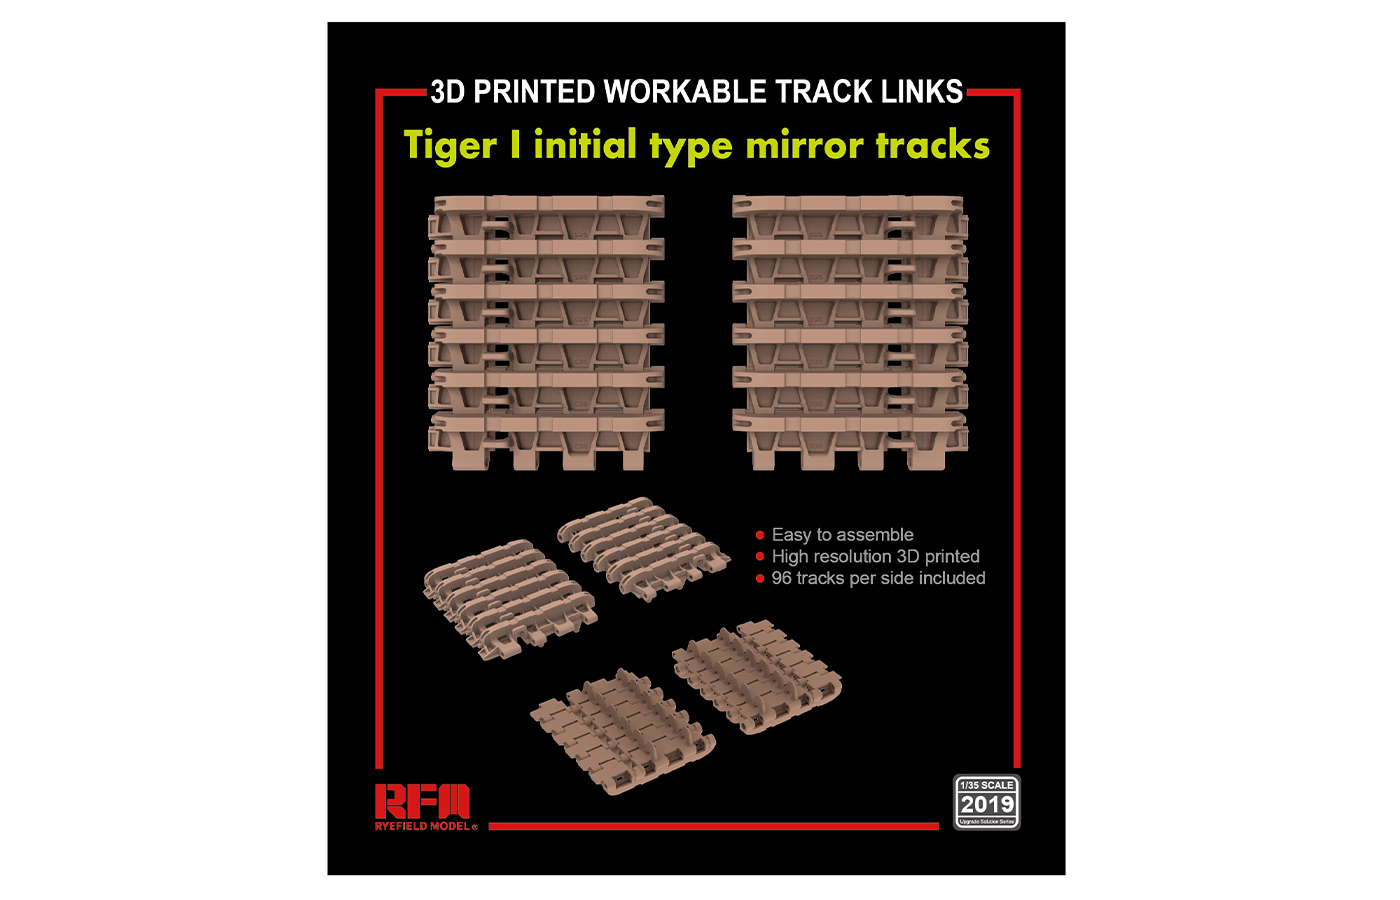 RM-2019 TIGER I initial type mirror tracks